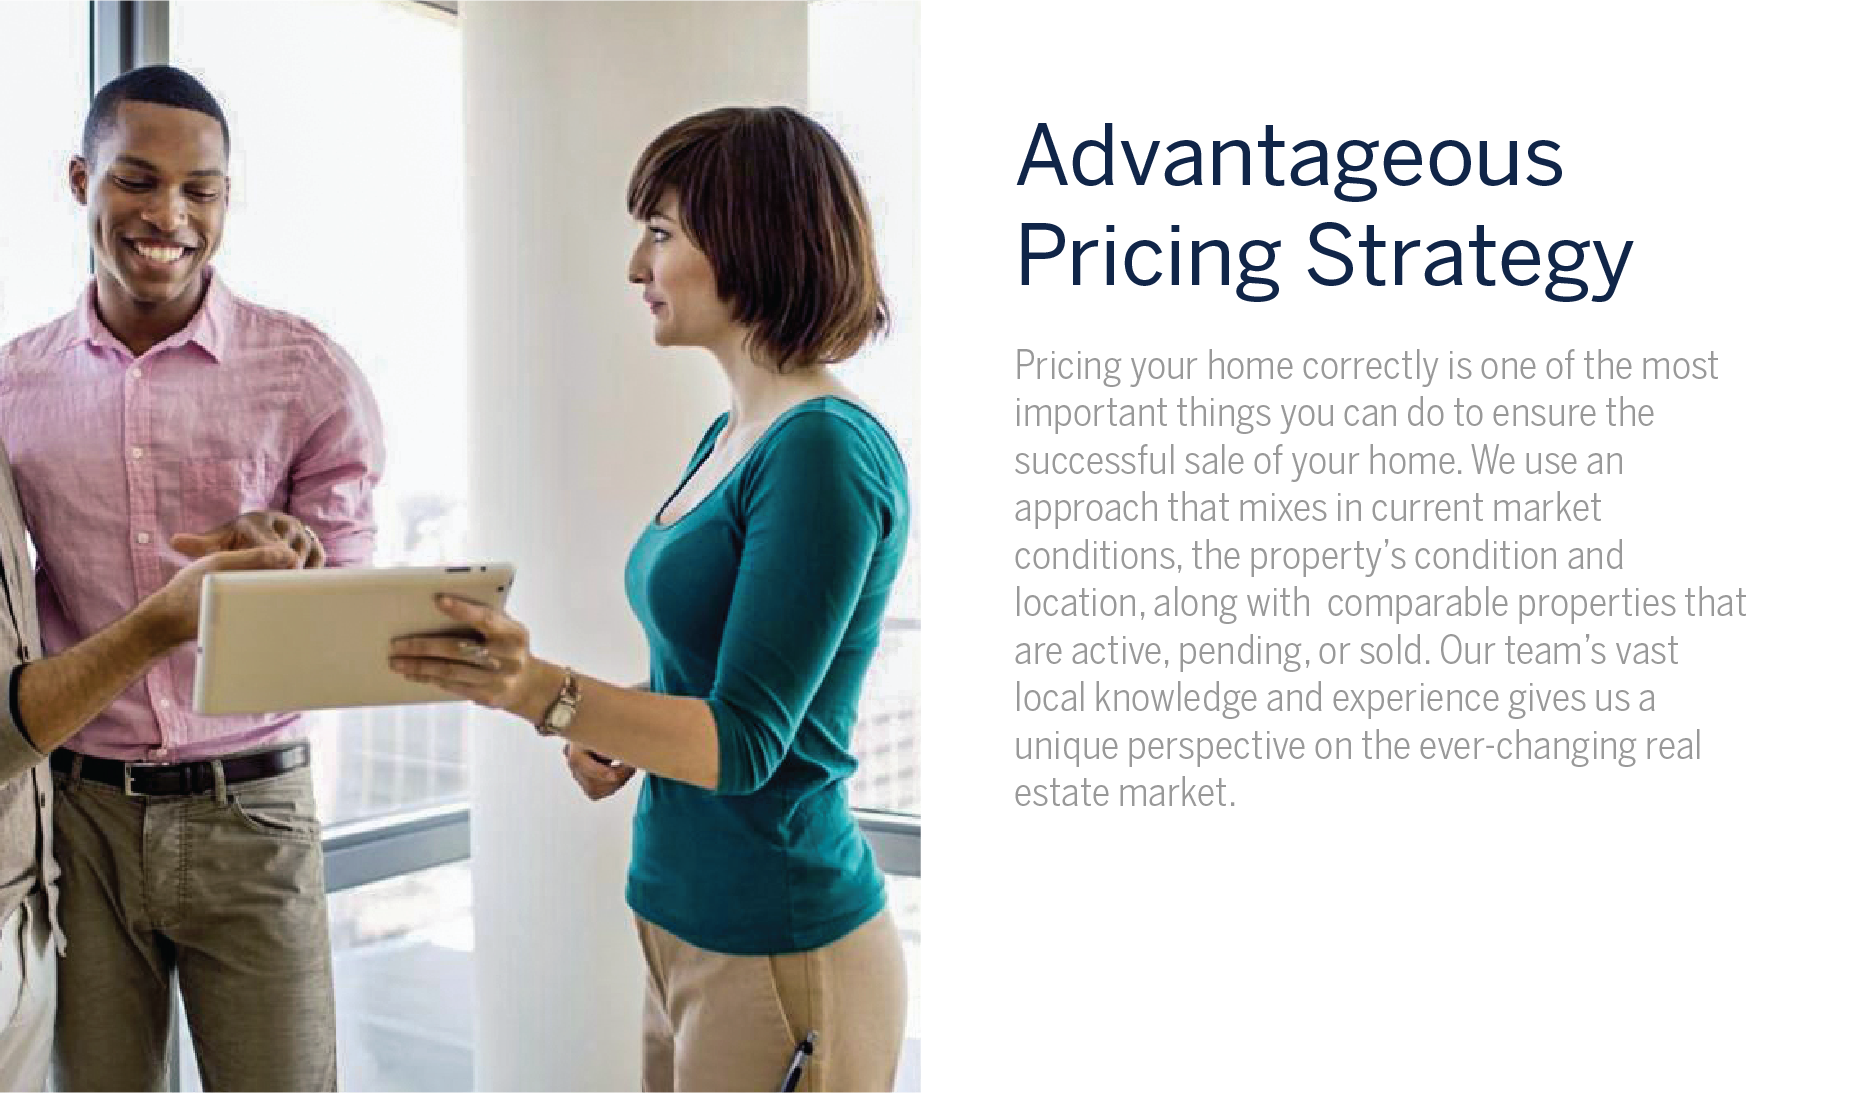 Advantages Pricing Strategy